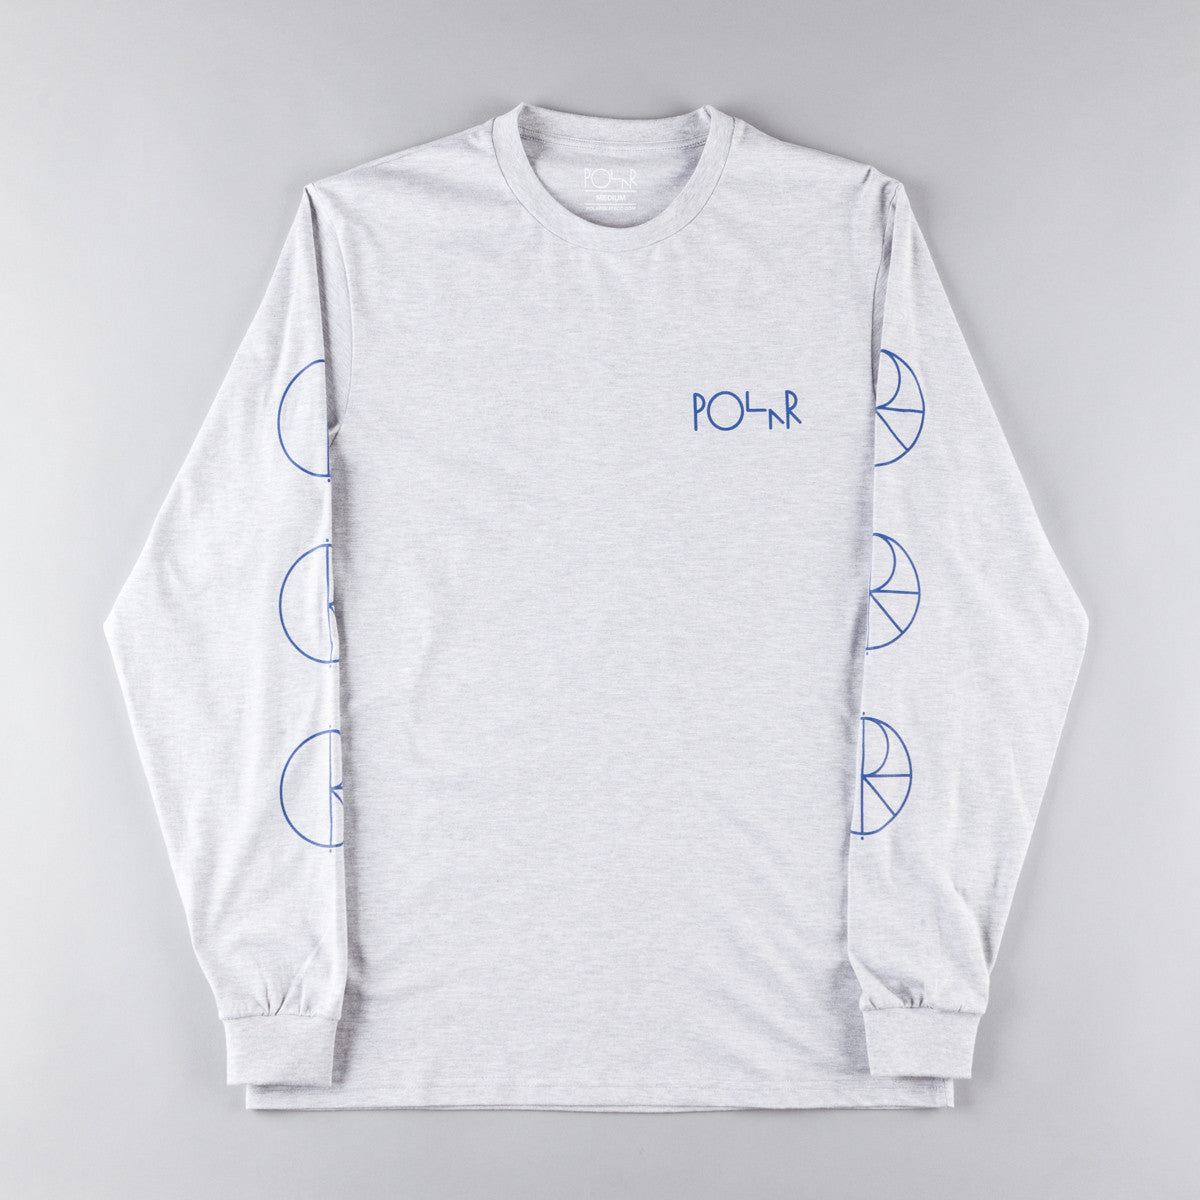 Polar Racing Long Sleeve T-Shirt